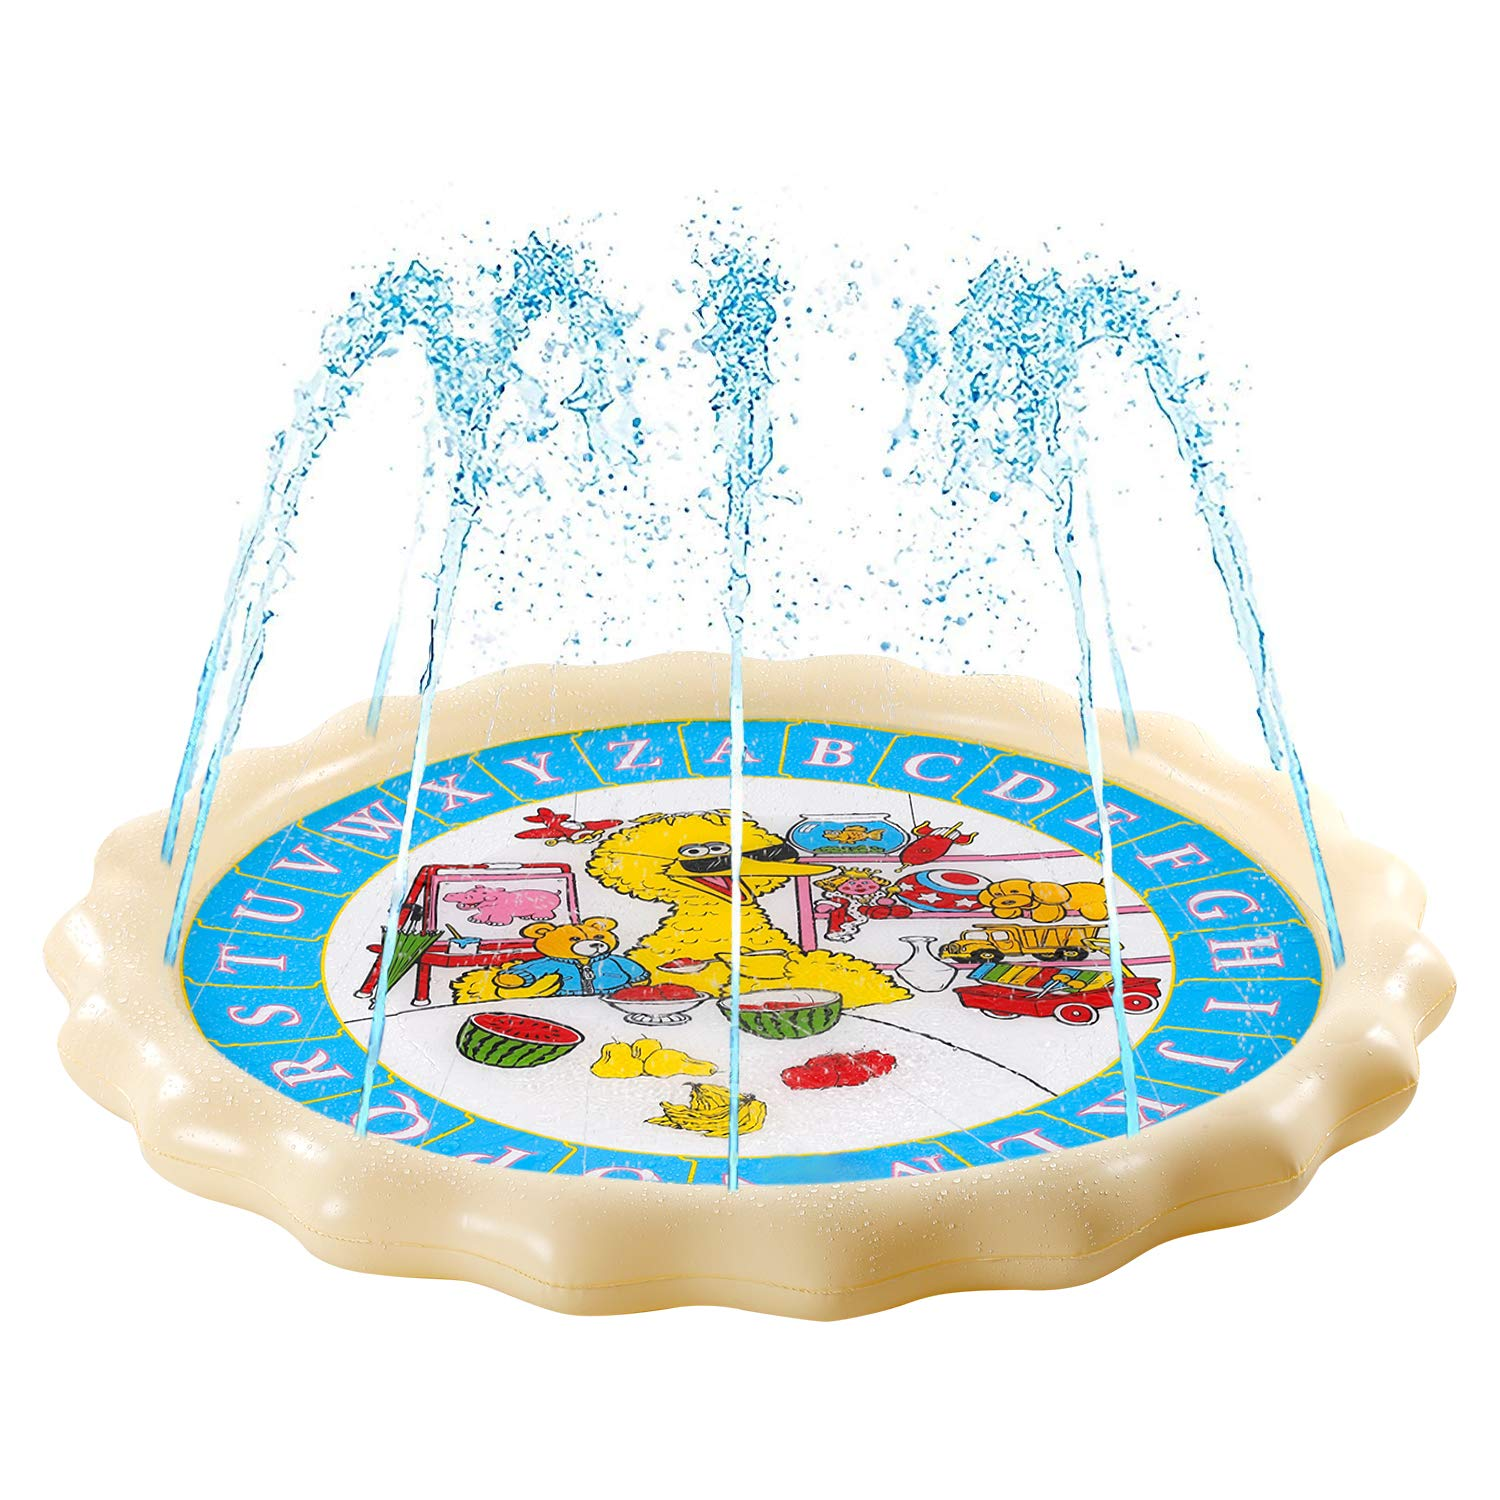 Supkiir Sprinkler Pad for Kids, Splash Play Mat for Learning, Inflatable  Water Toys for Boys and Girls.